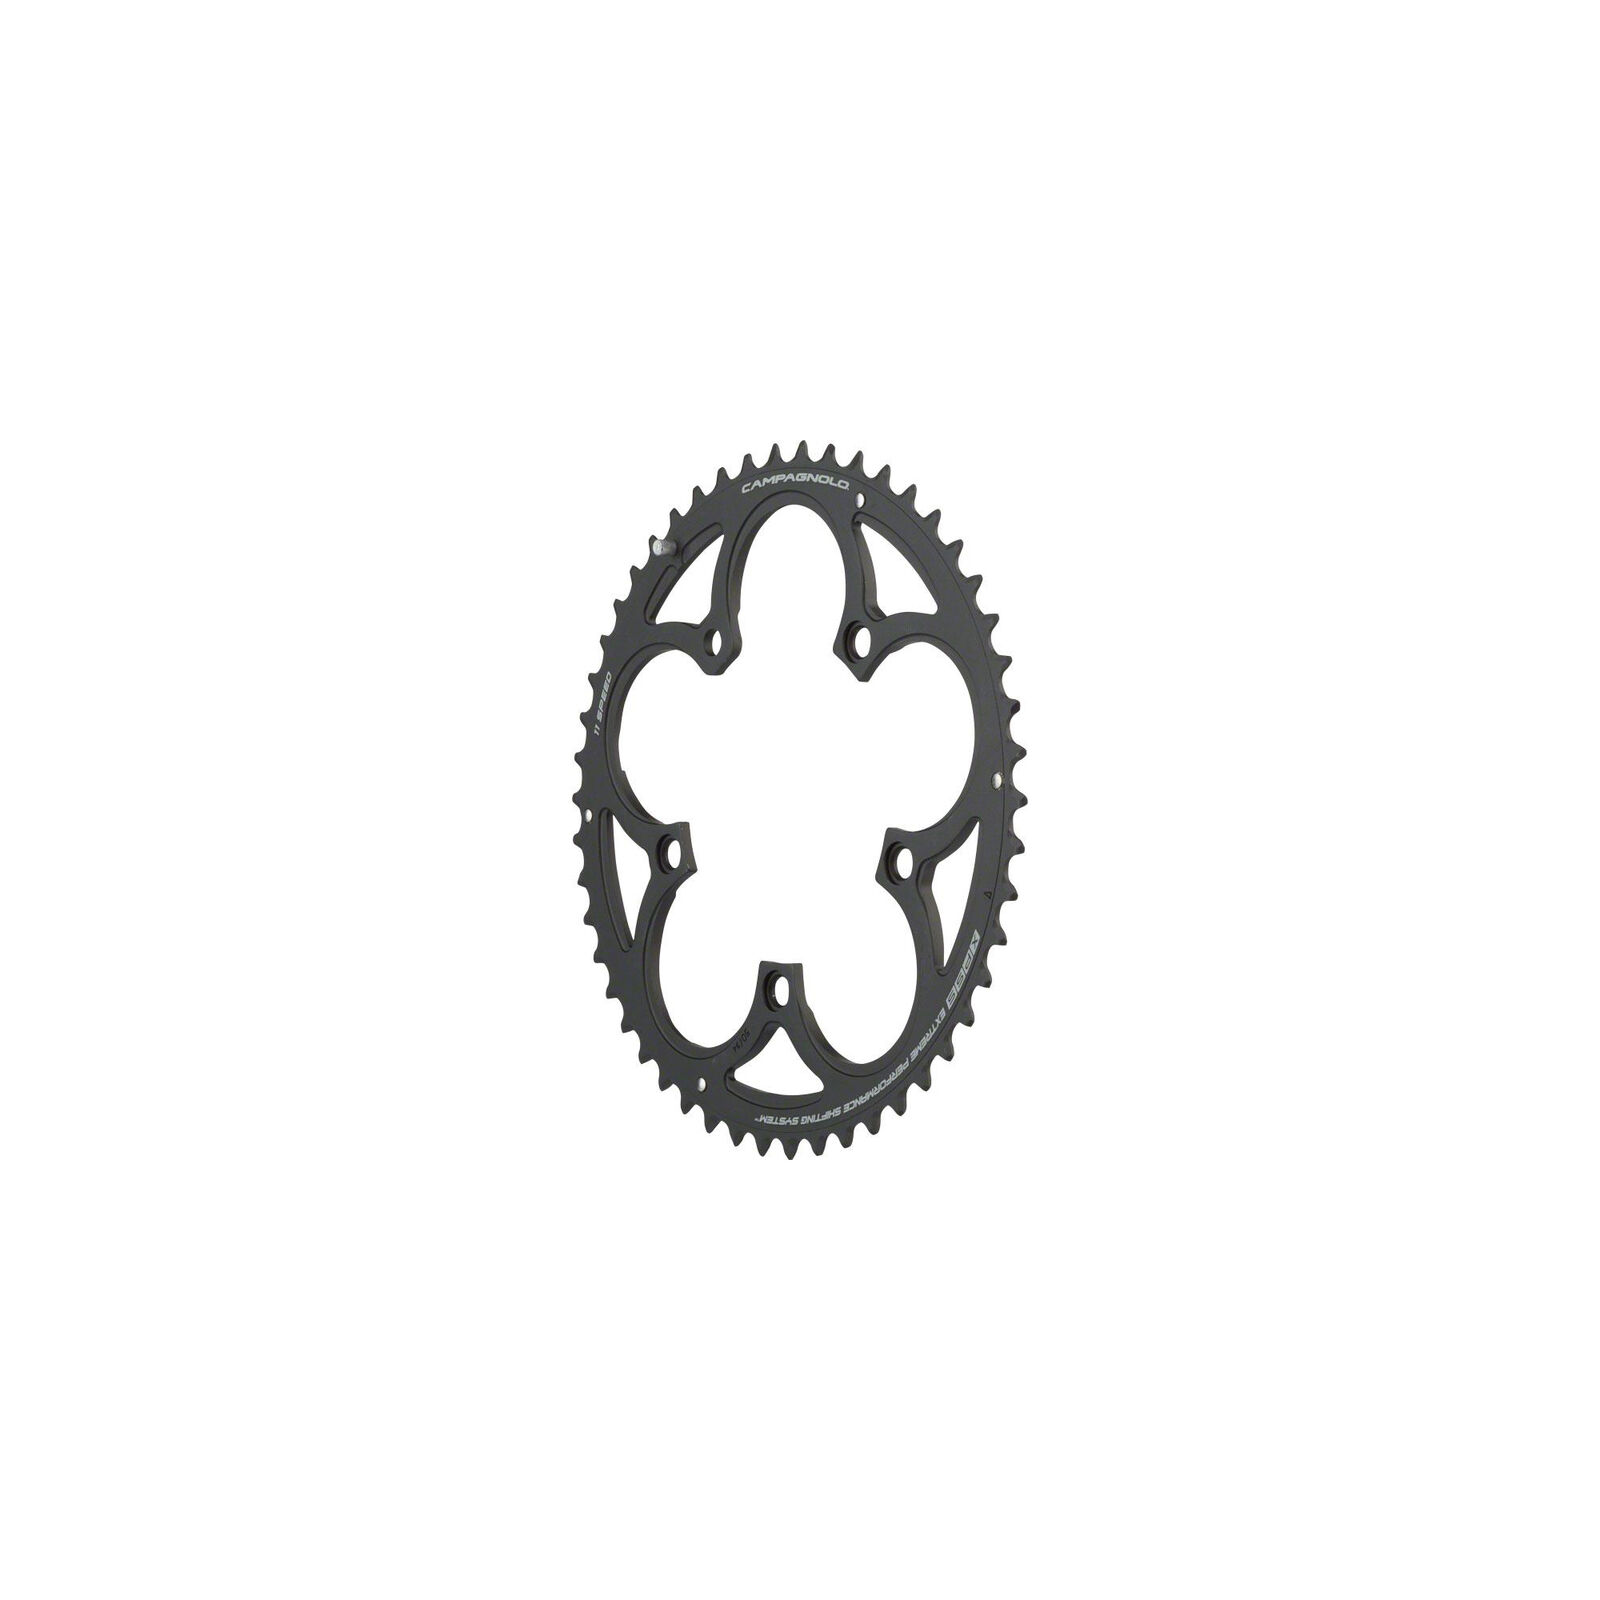 Campagnolo 201114 Super RecordRecordChorus 11Speed Road Bike 50t Chainring